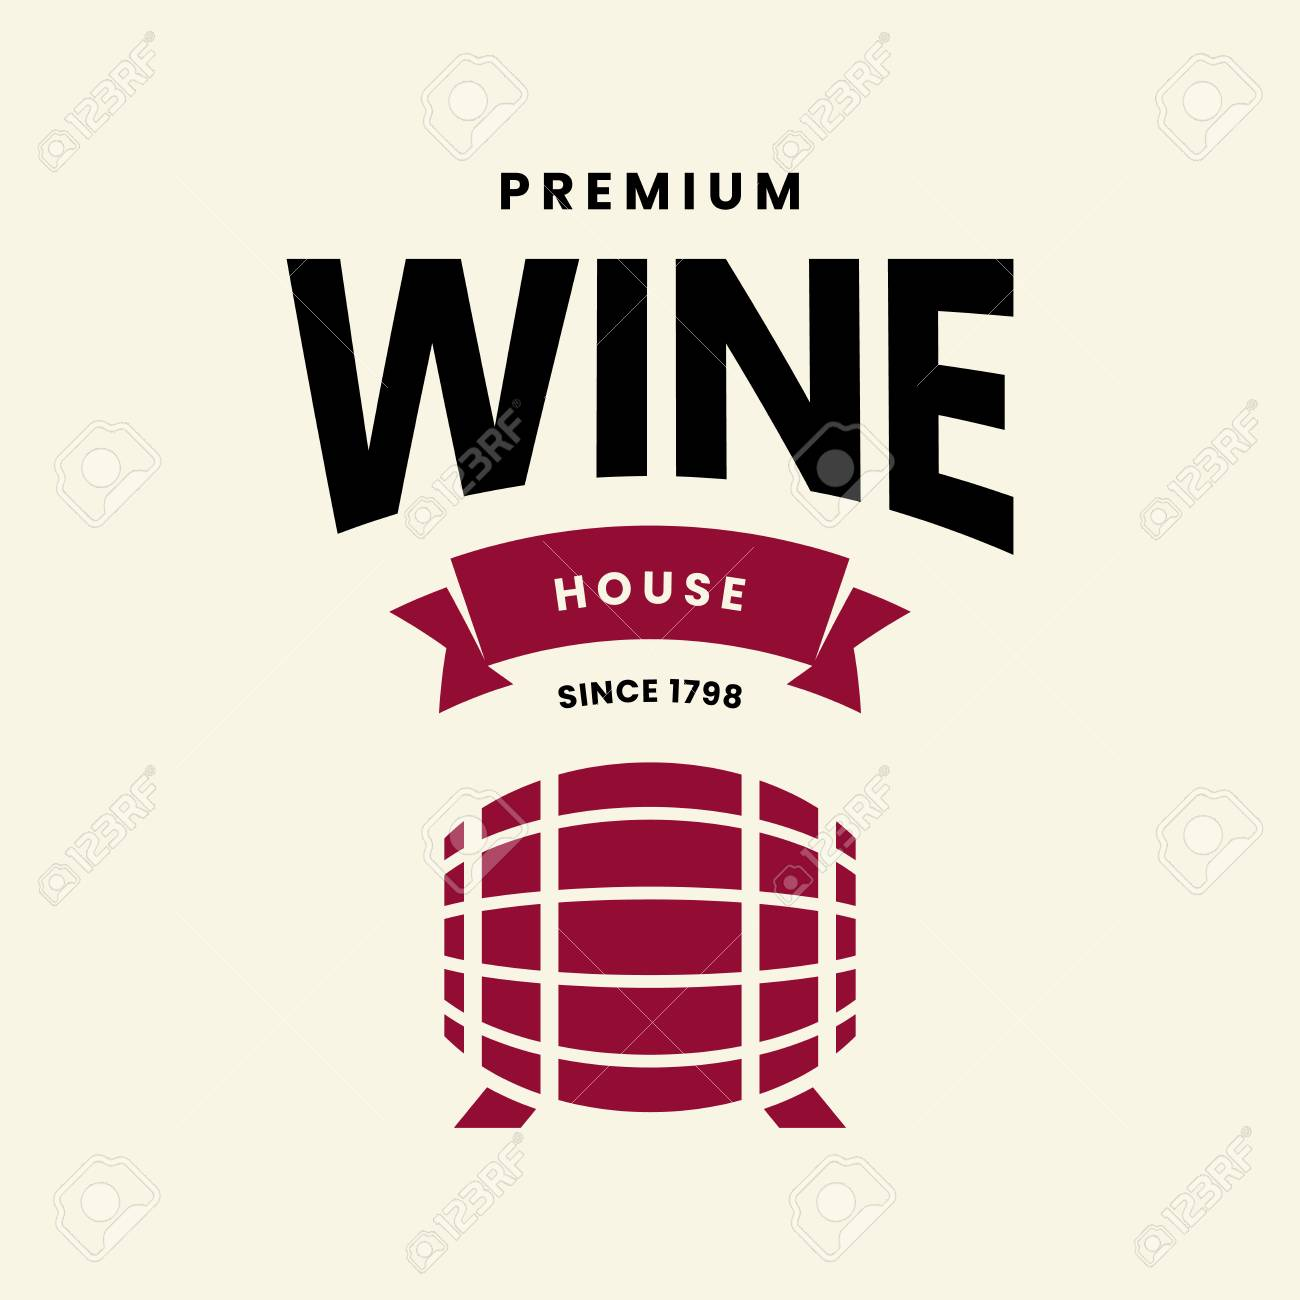 Modern wine vector logo sign for tavern, restaurant, house, shop, store, club and cellar isolated on light background. Premium quality vinery logotype illustration. Fashion brand badge design template. - 126498888